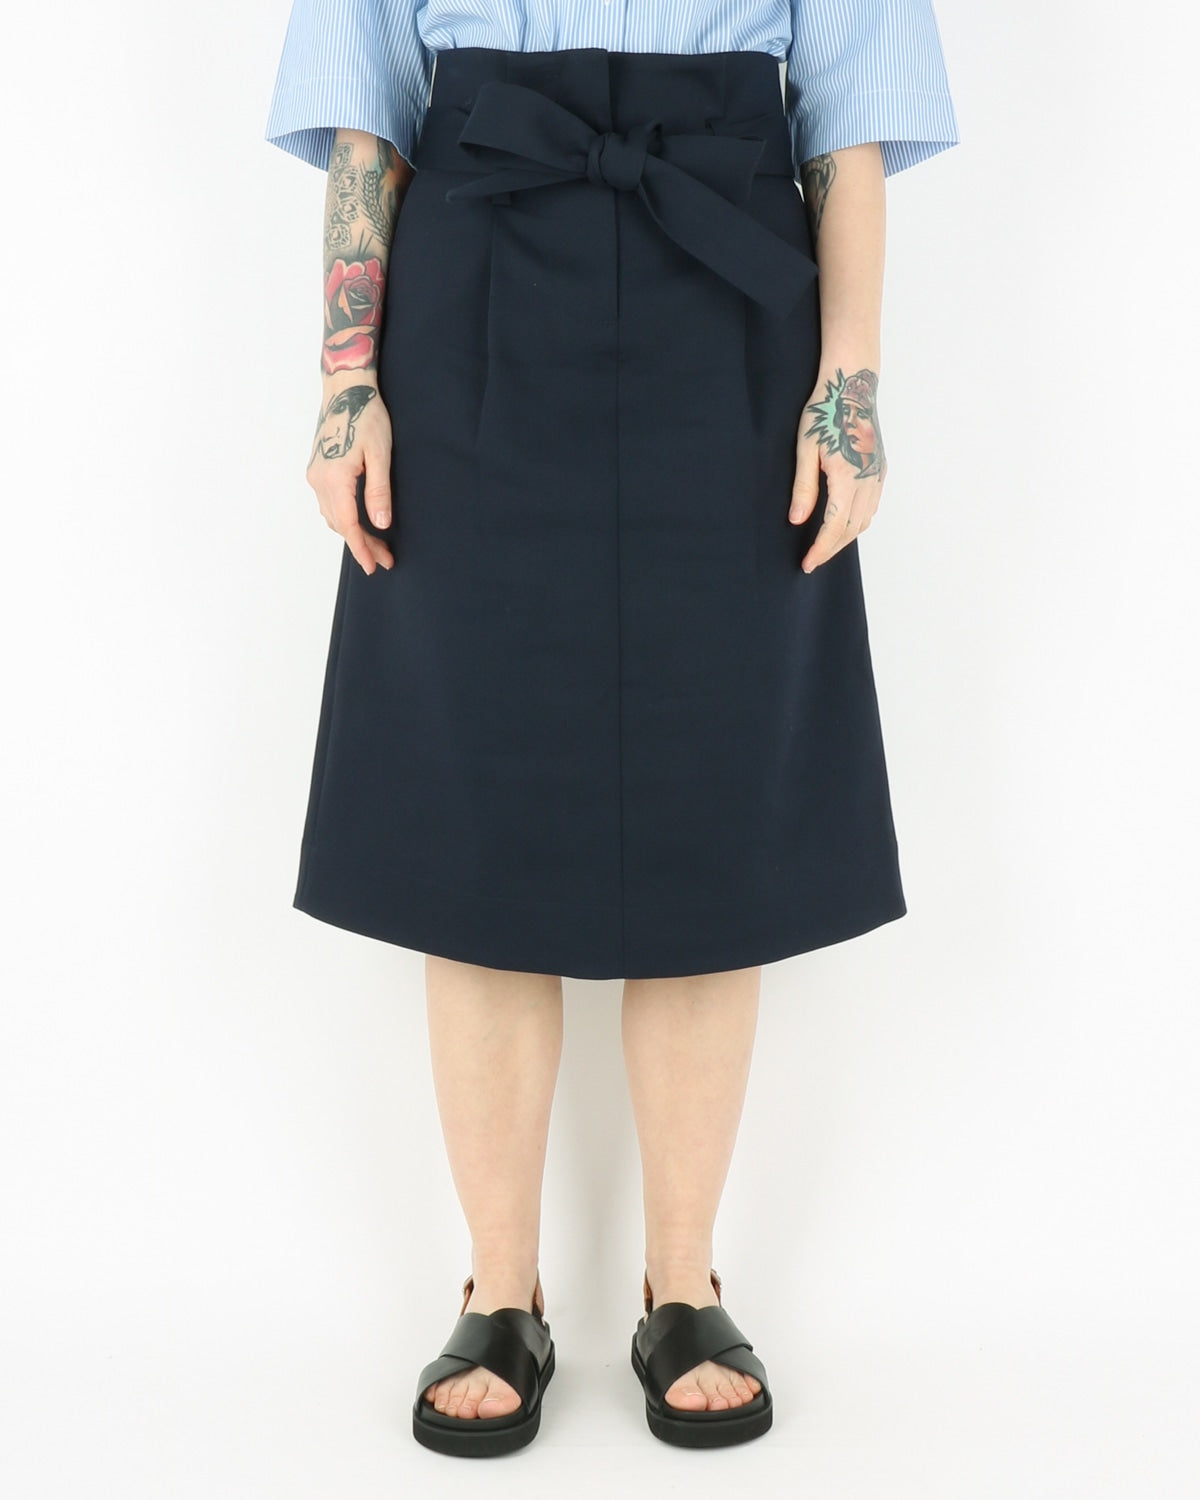 libertine libertine_endless skirt_navy_1_3